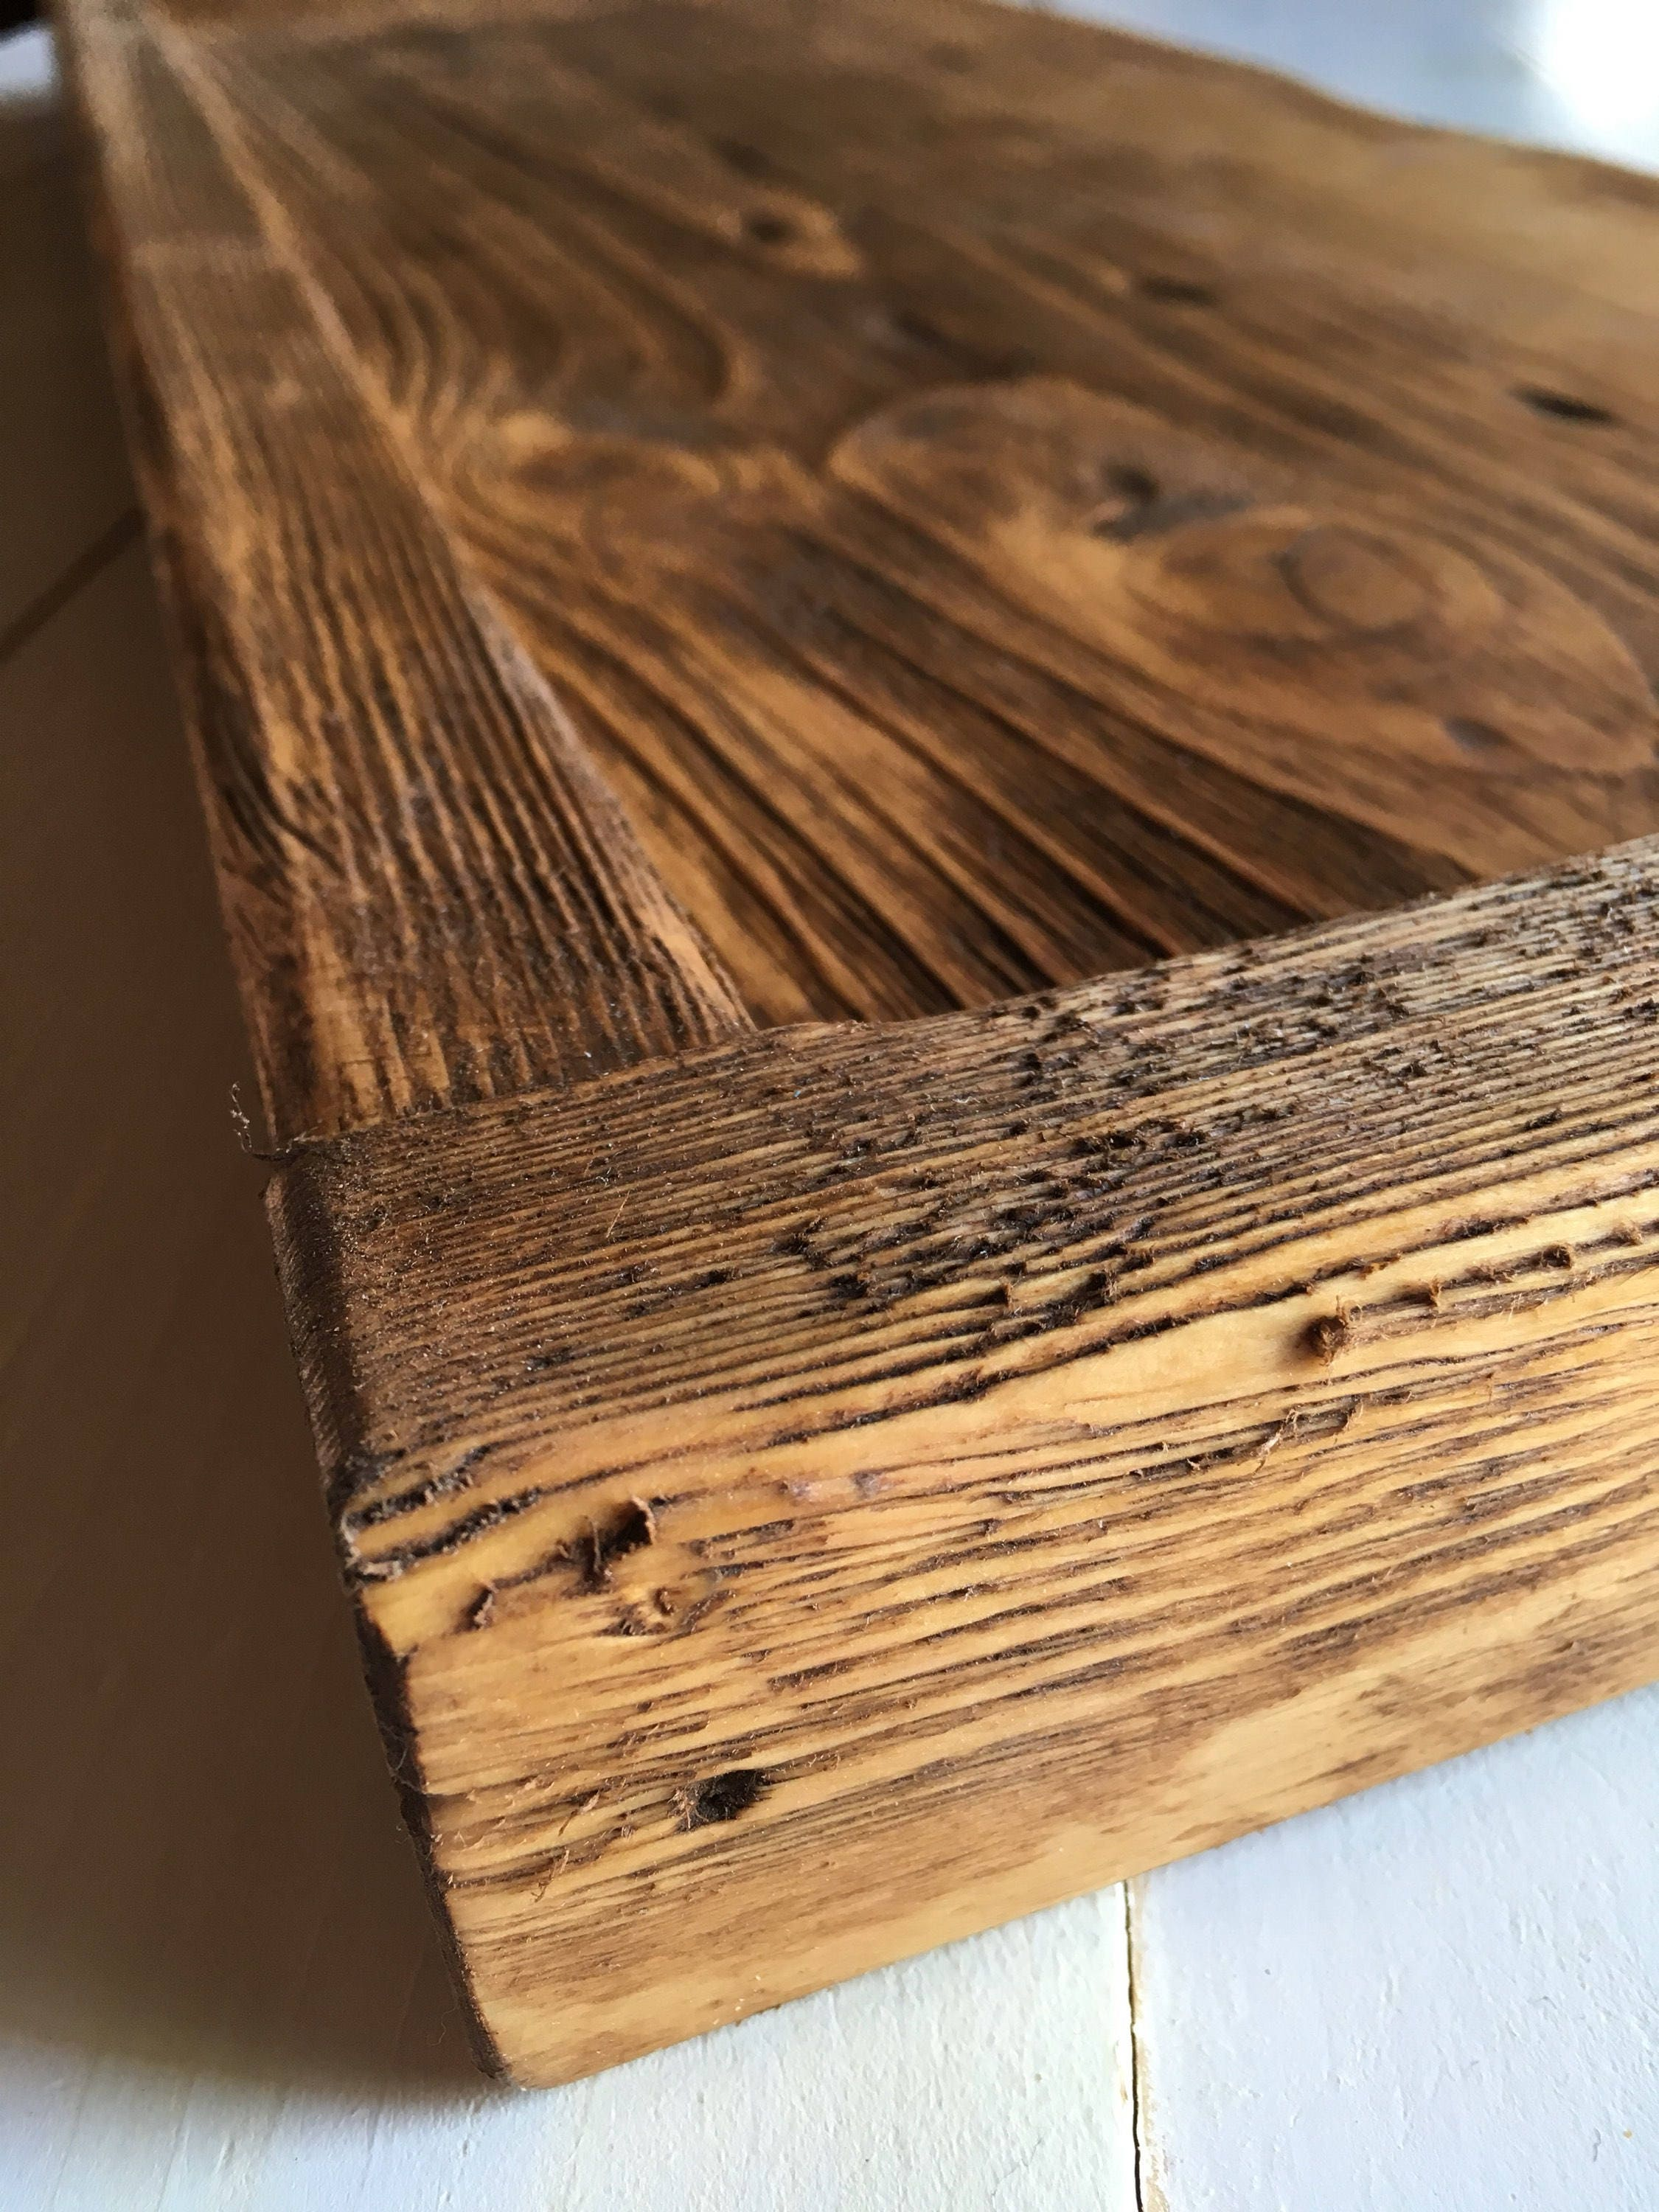 Bath tray, wood, bath board, bath shelf, reclaimed wood, bath caddy